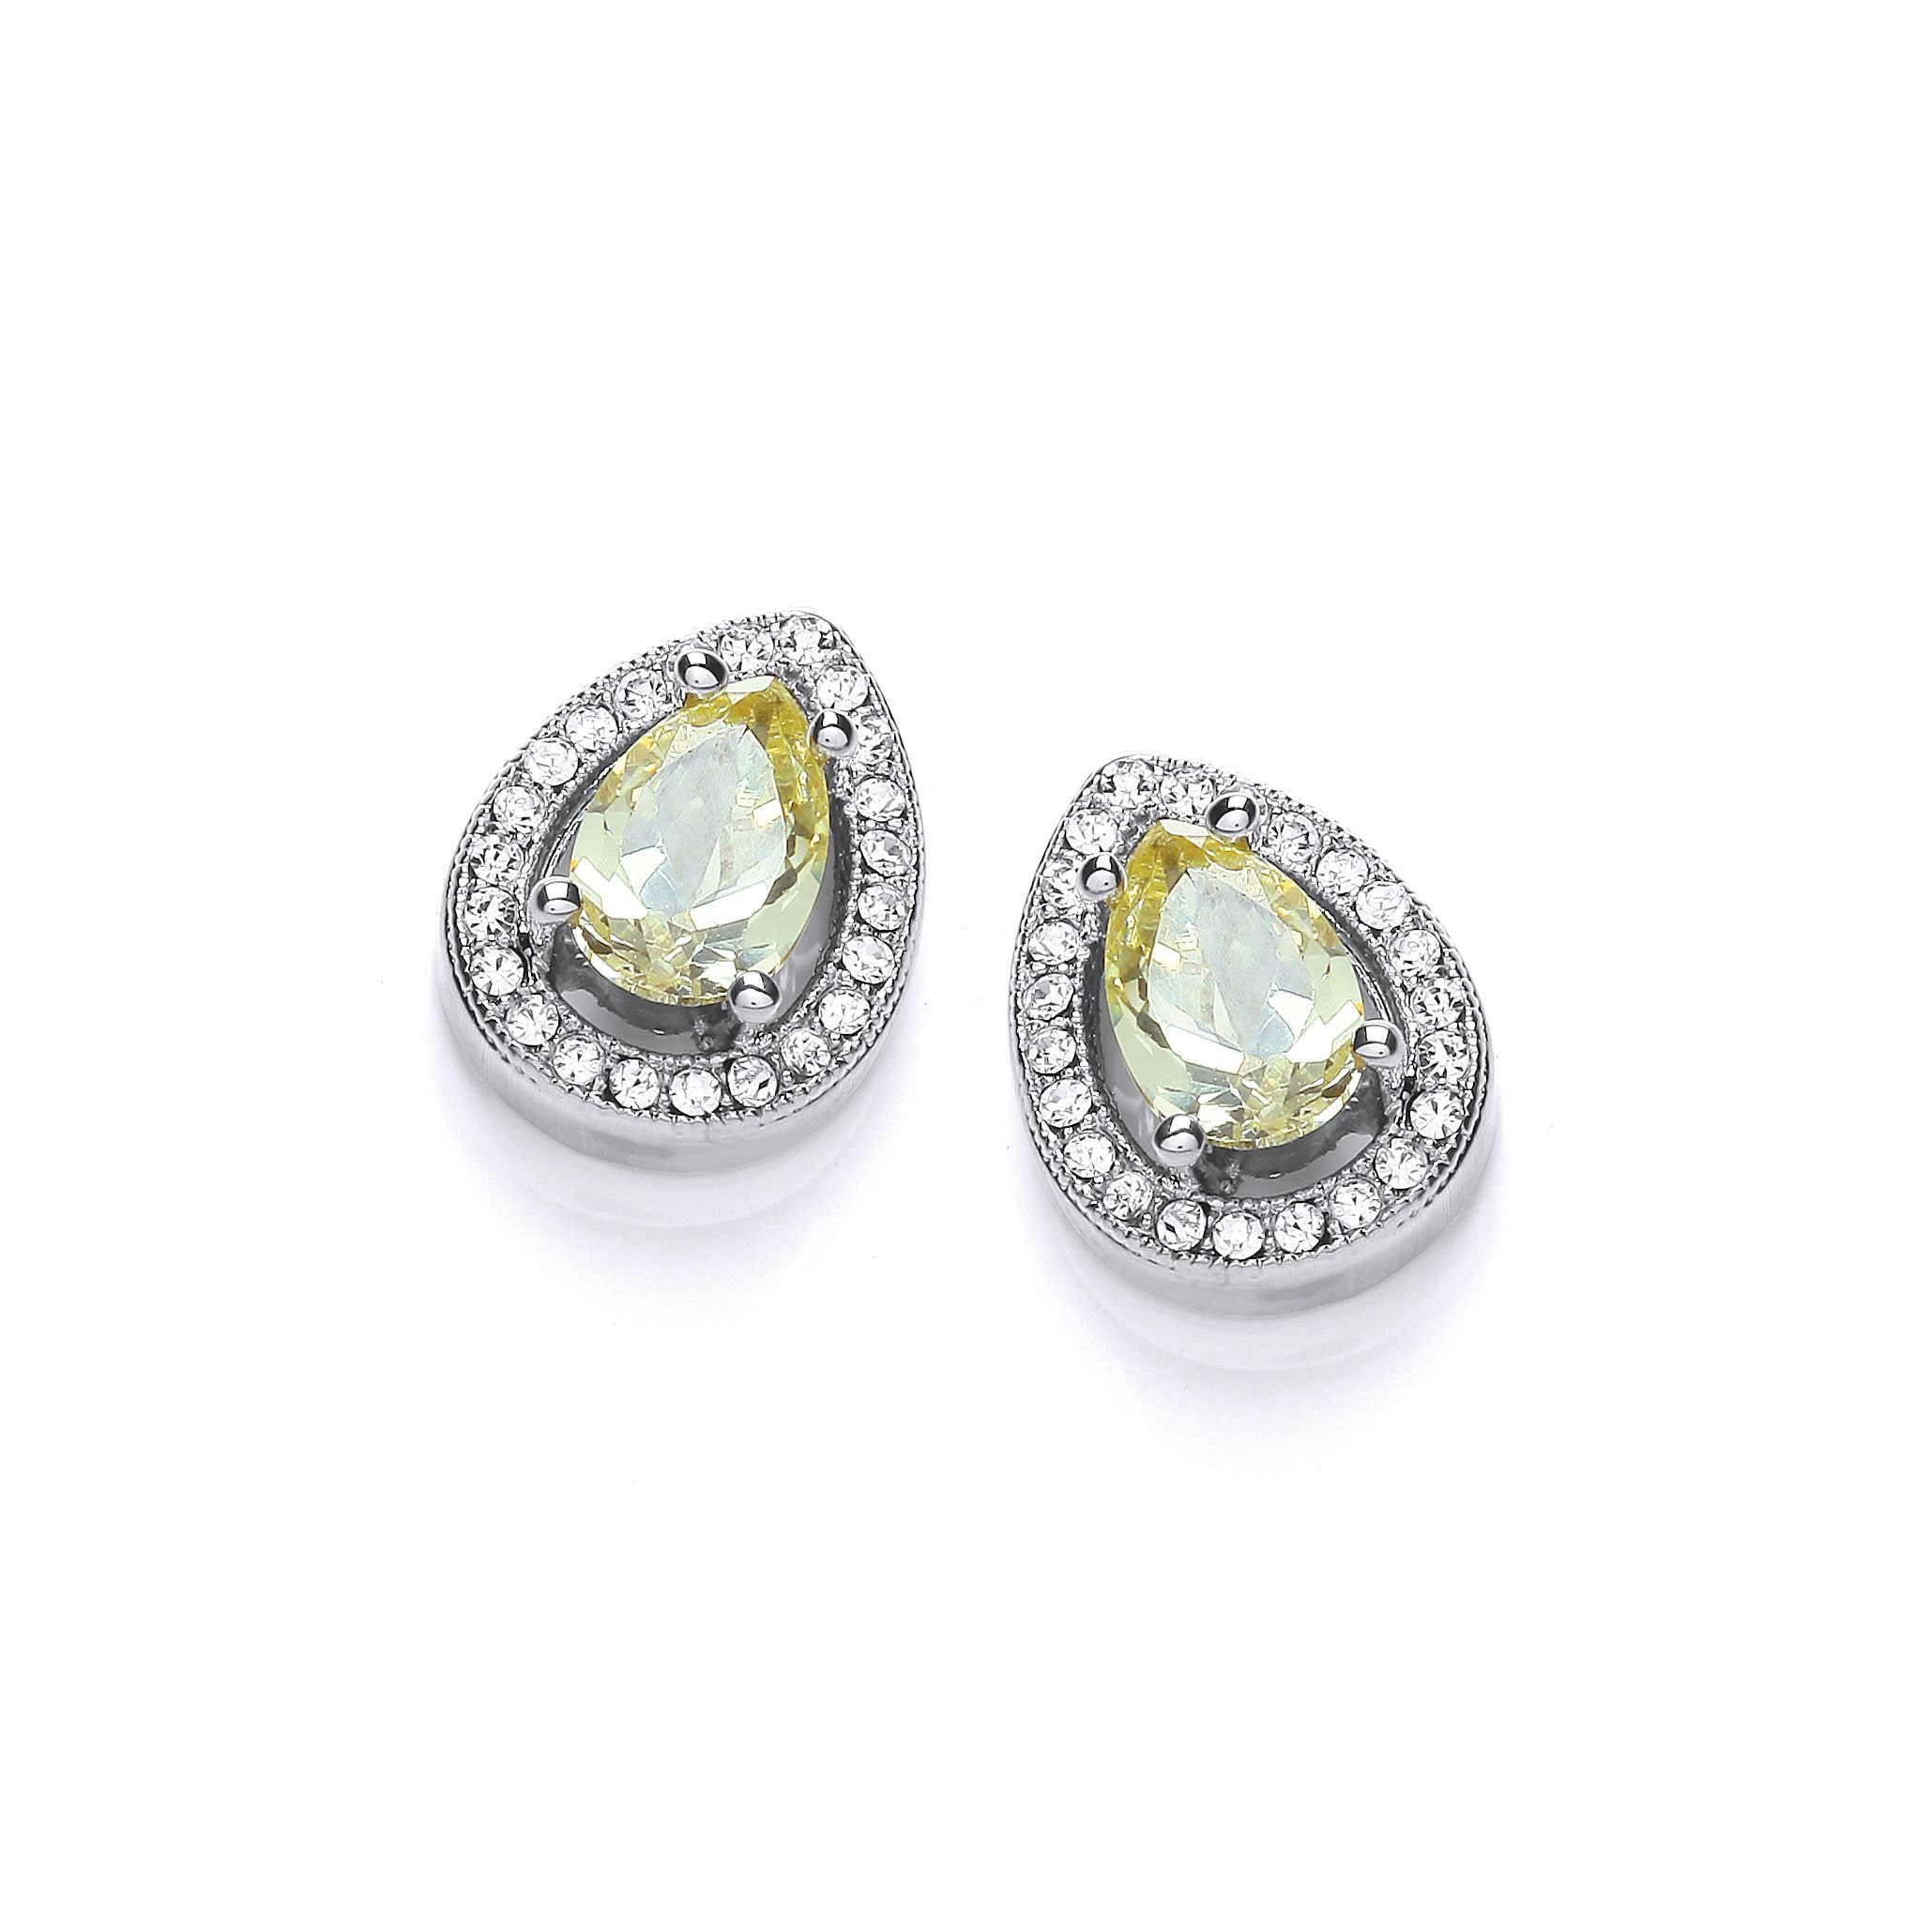 Rhodium plate delicate pear earrings